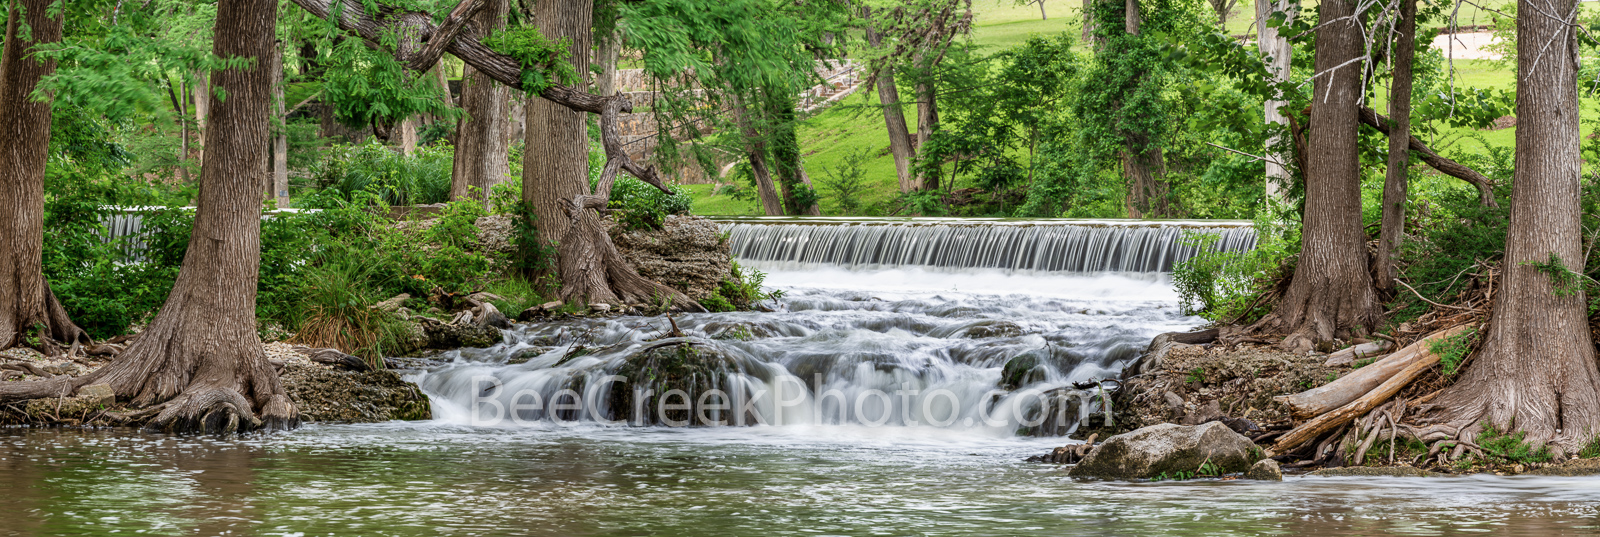 Waterfalls Along the Guadalupe River Pano- This is along the guadalupe river in the Texas hill country as the river twist and...